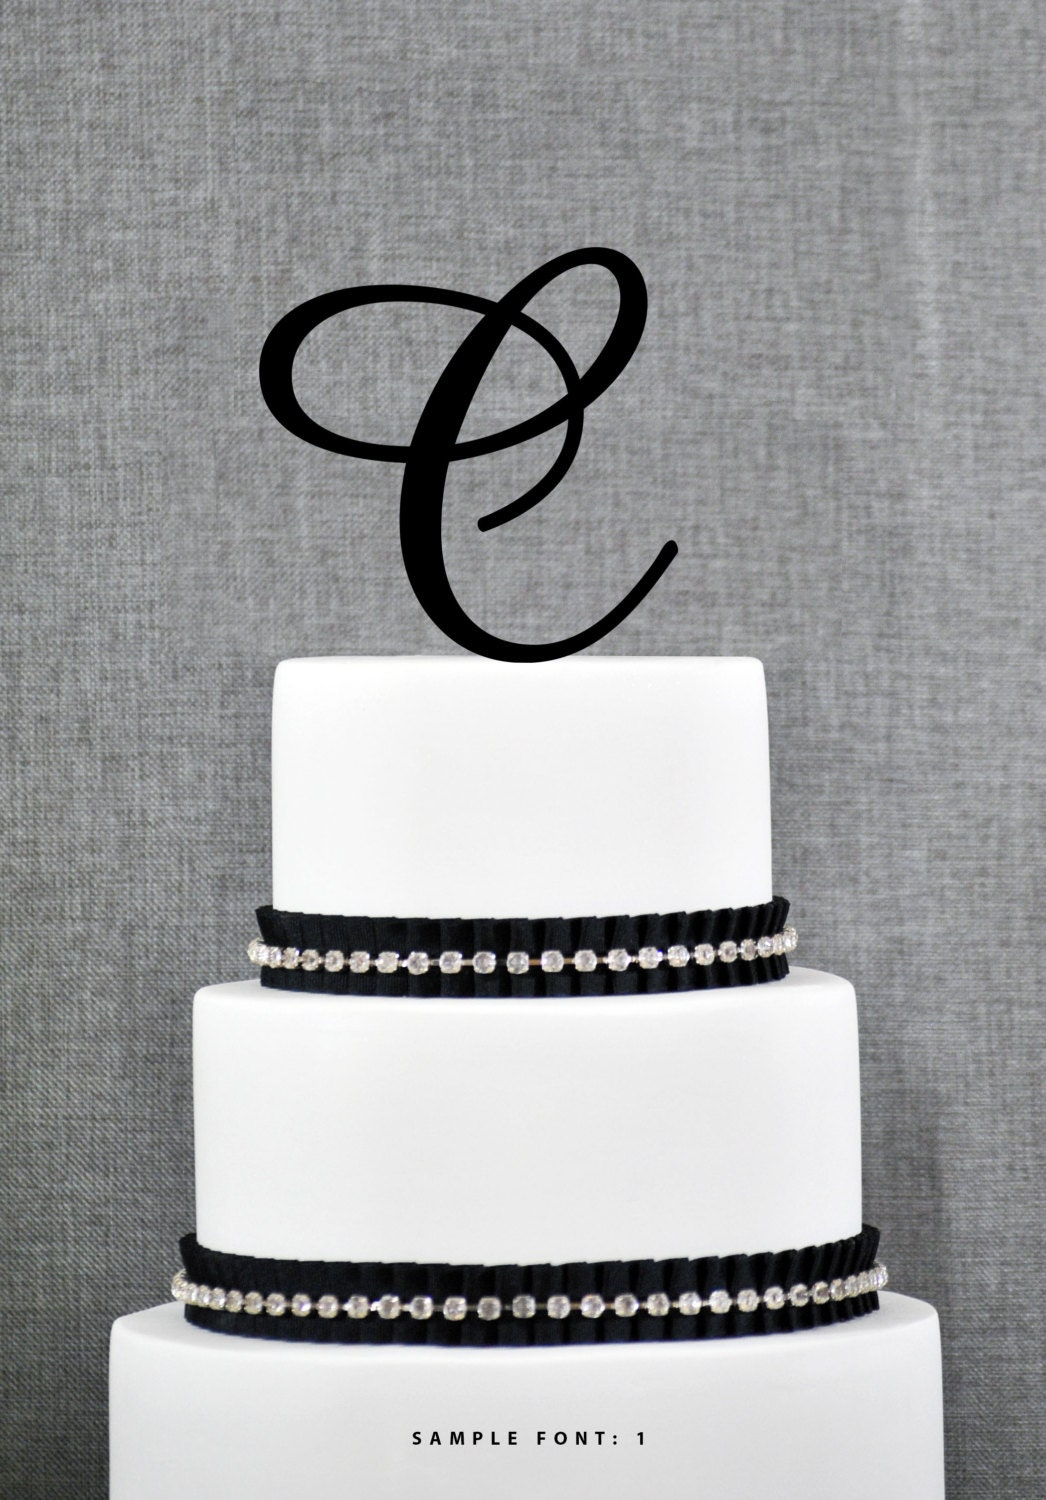 letter c wedding cake topper personalized monogram initial wedding cake toppers letter c 16832